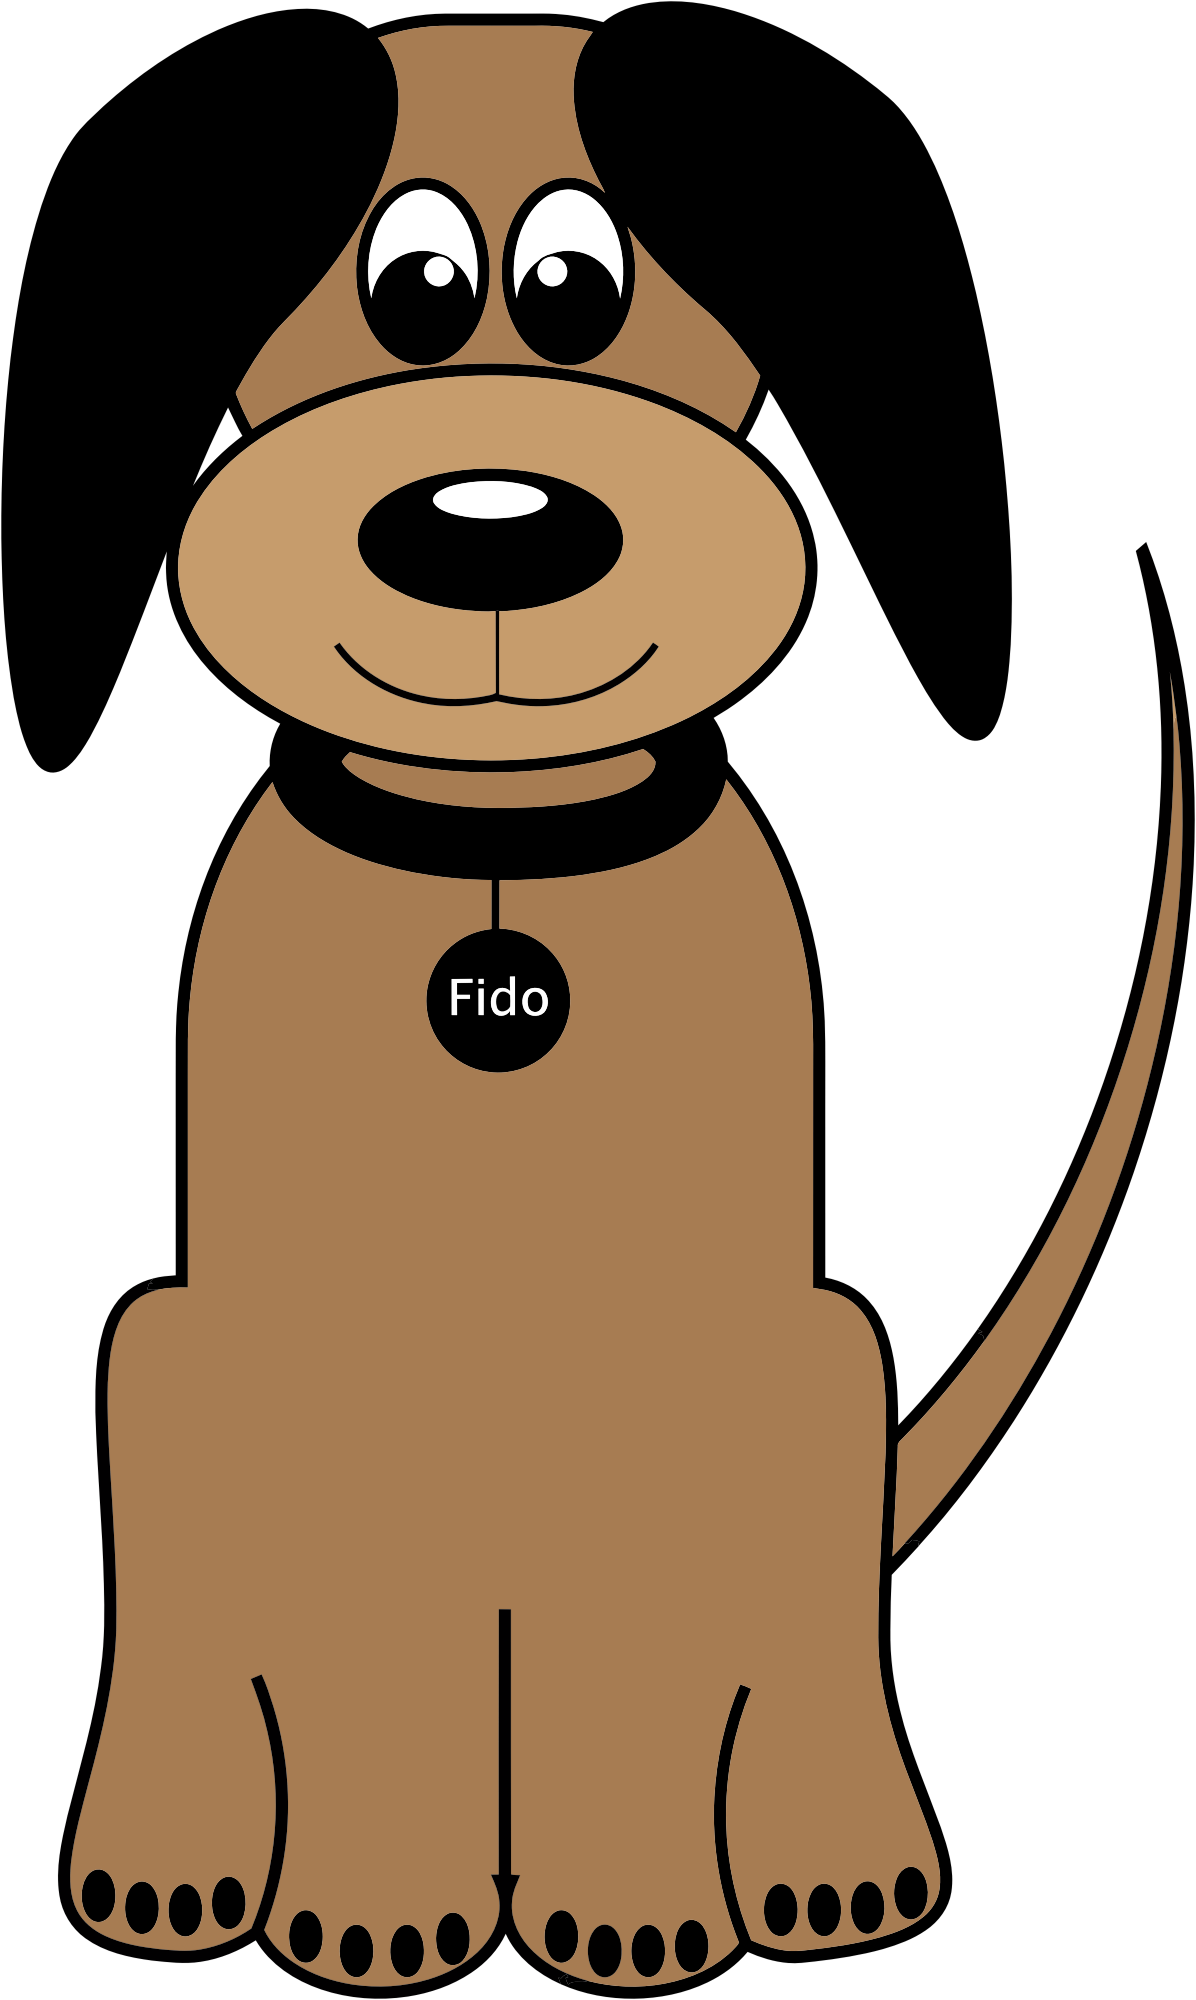 Cartoon dog png. Fido icons free and